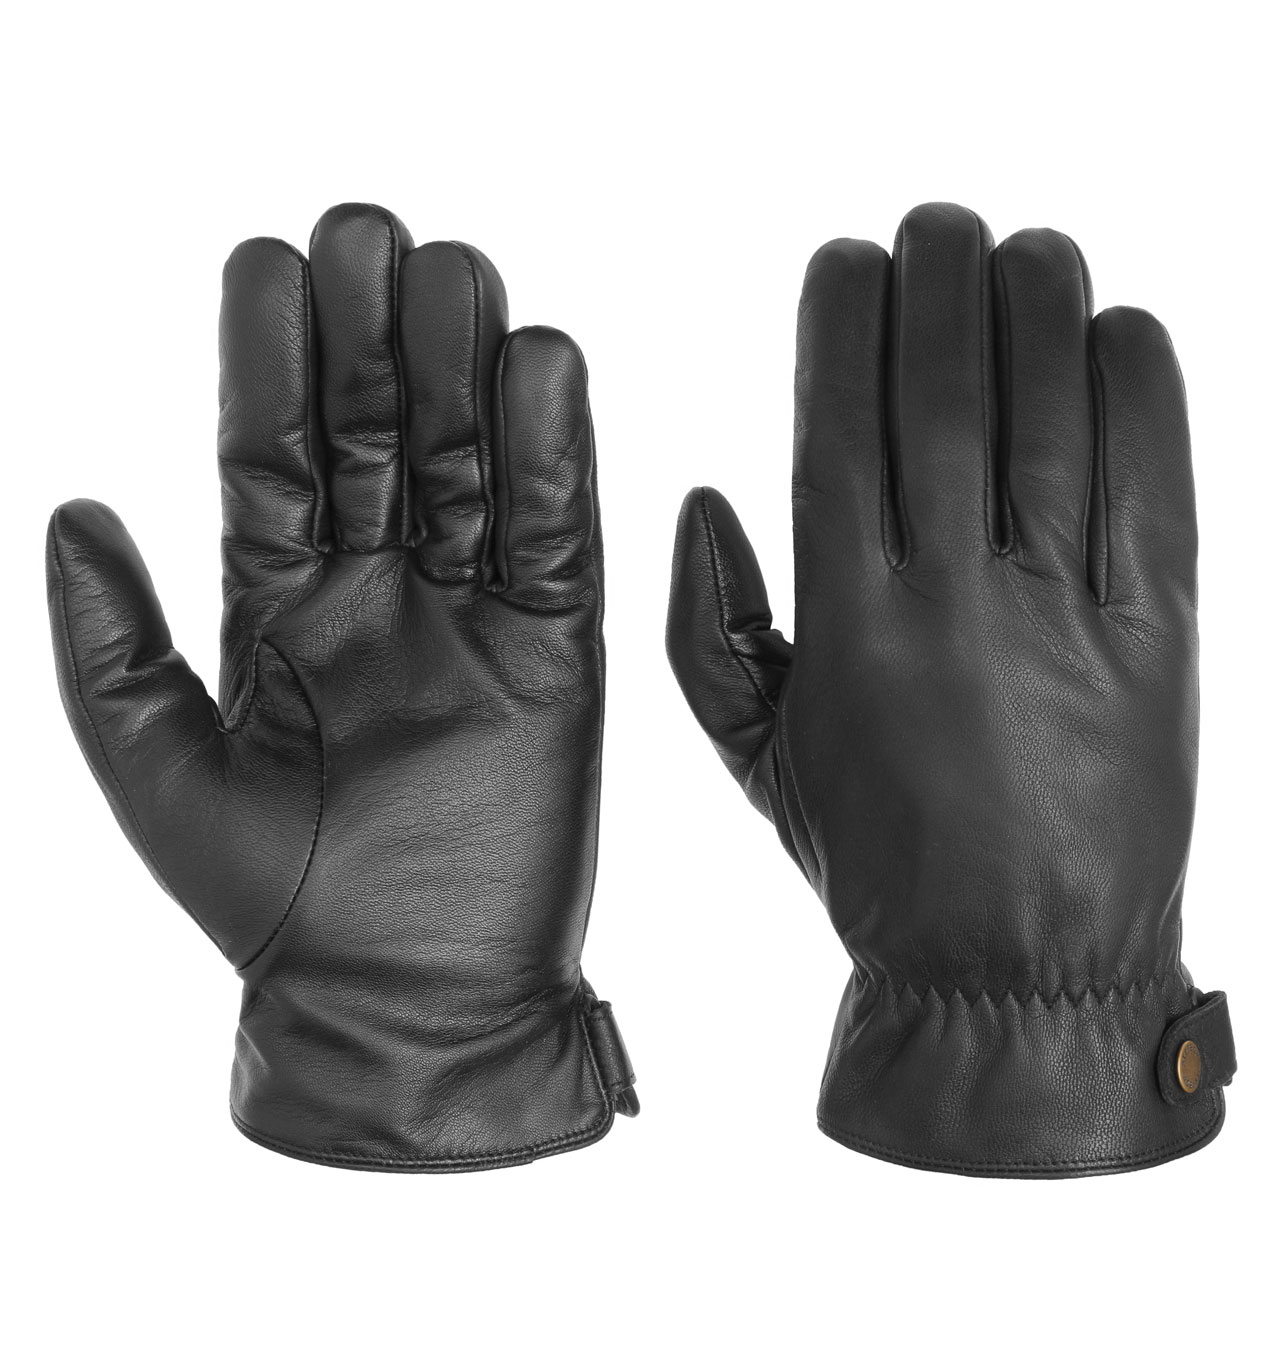 Stetson - Conductive Leather Gloves - Black